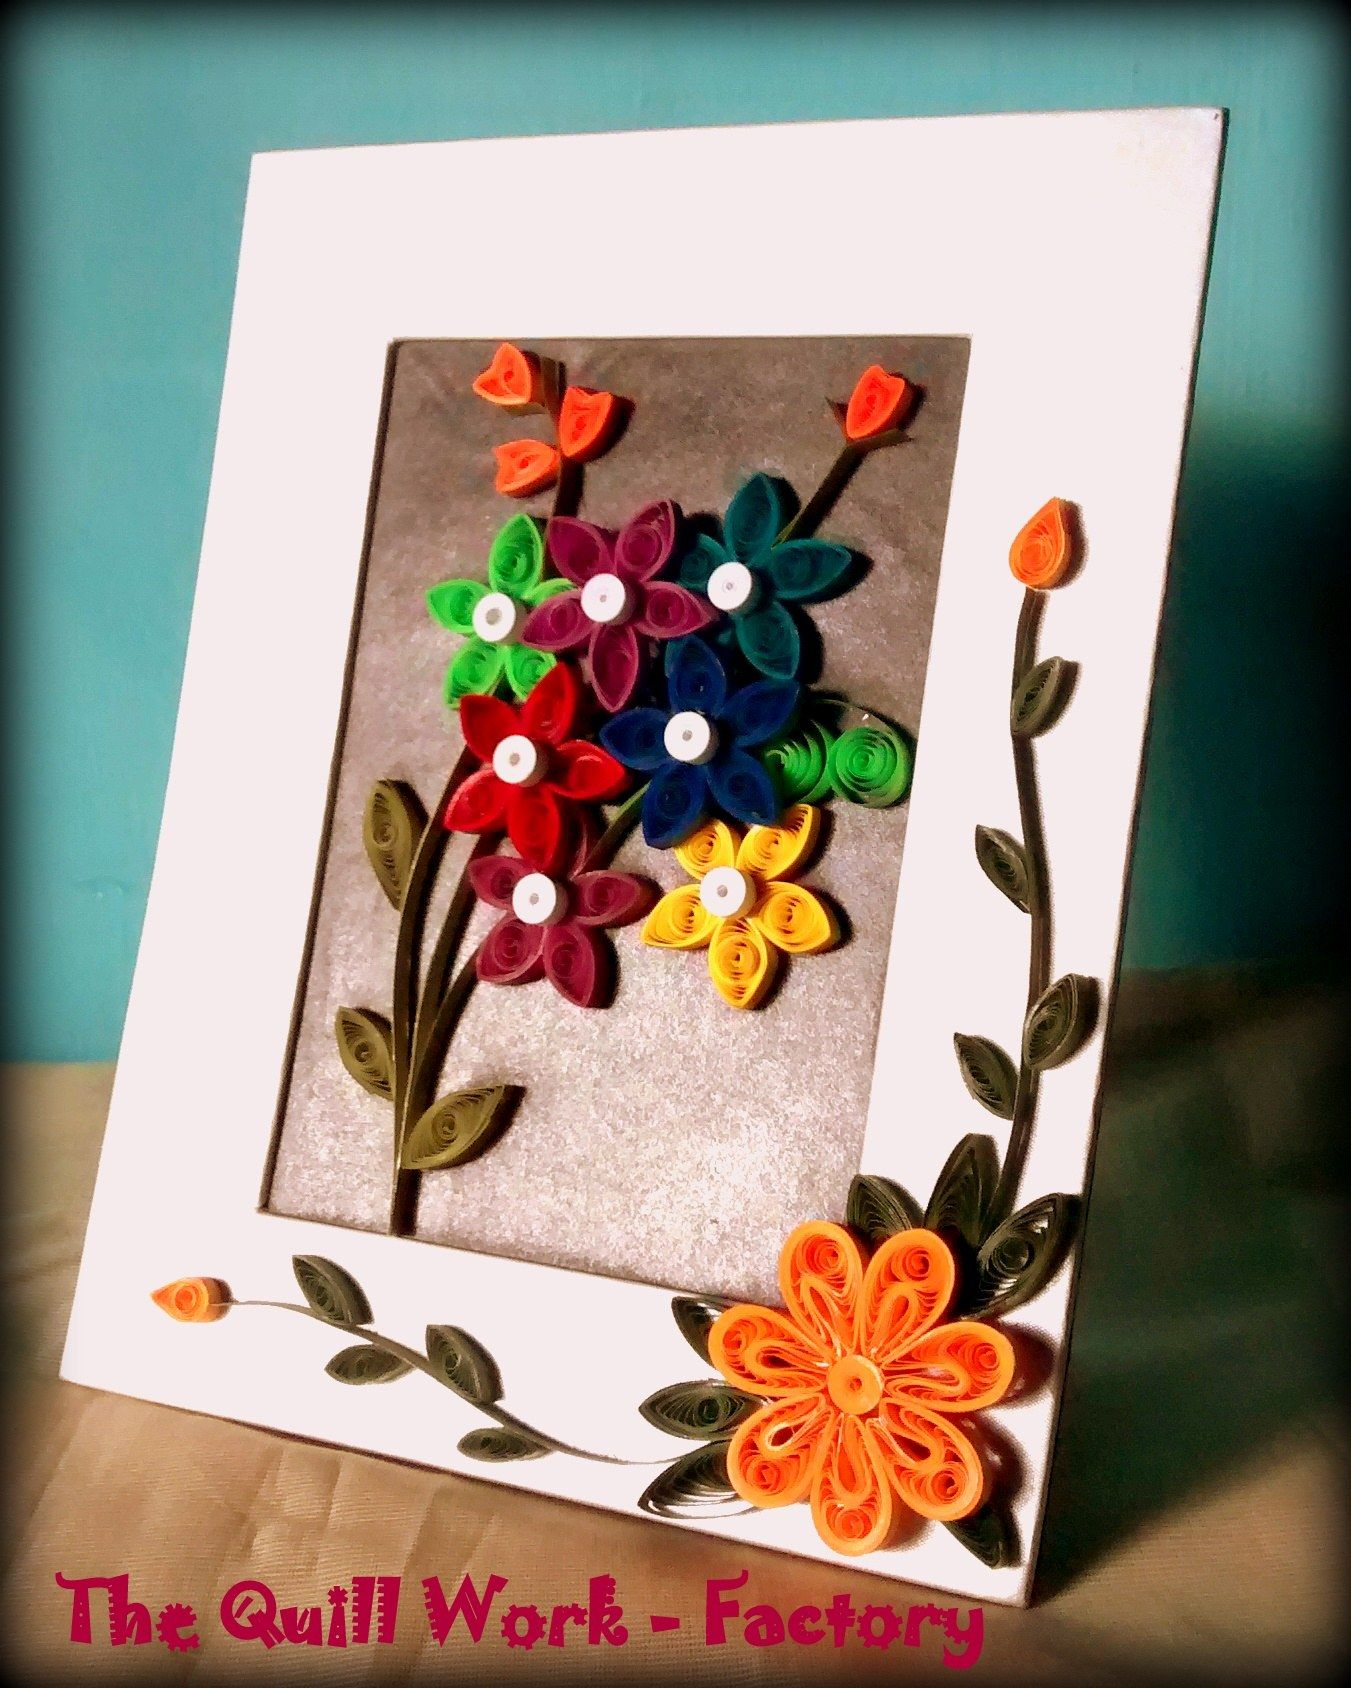 Quilling Home Decor Diy Wall Hanging Ftom Waste Cd And Paper Quilling Home Decor Diy